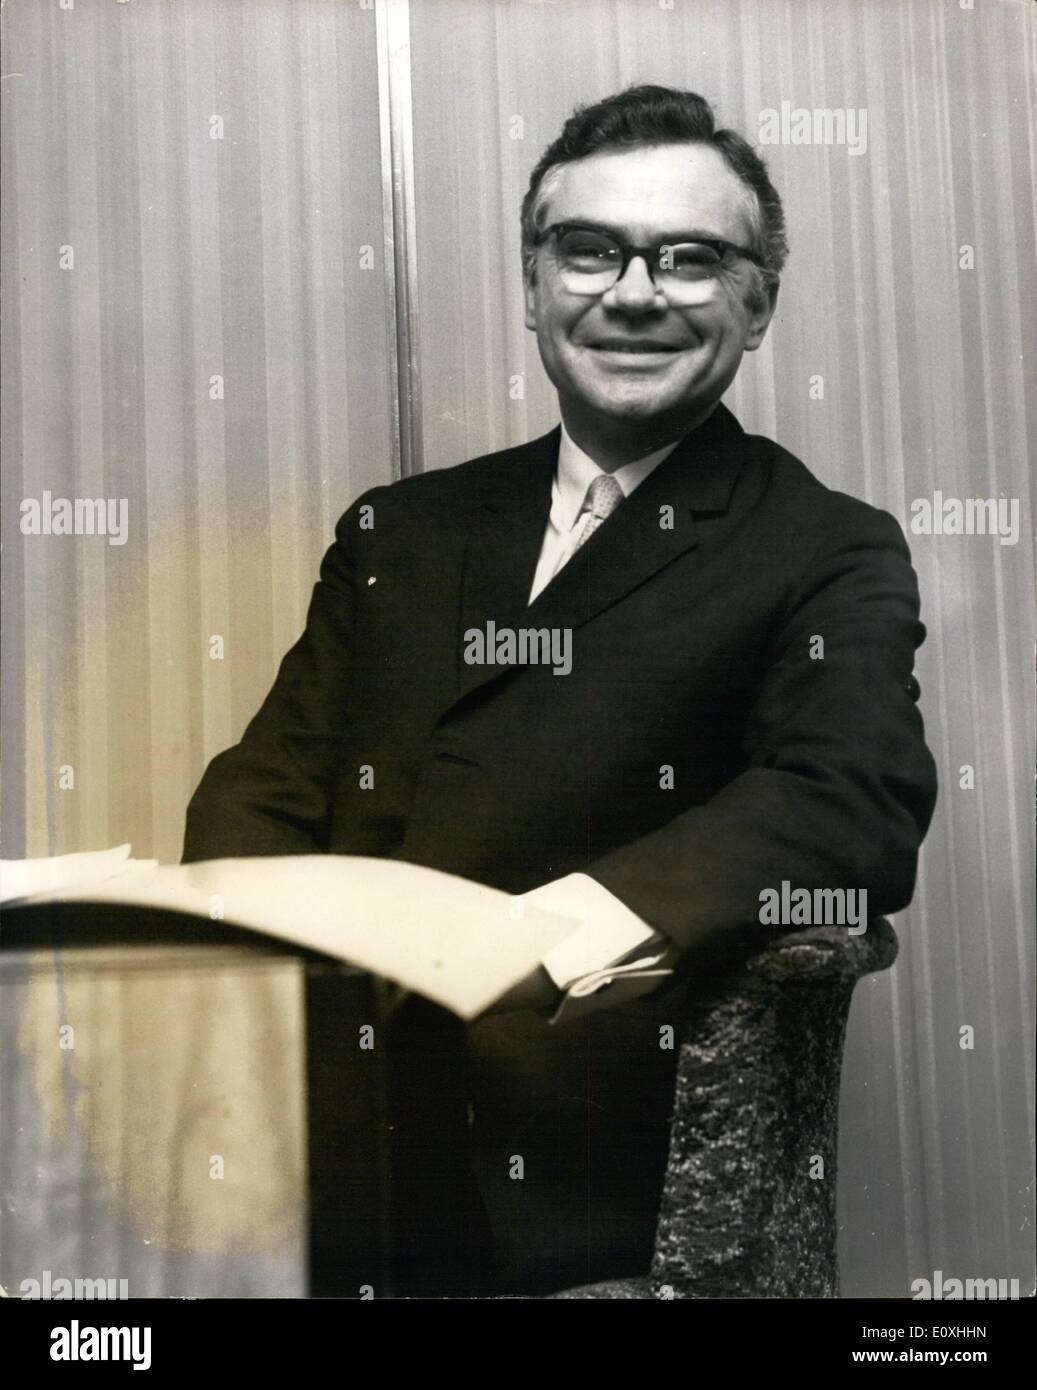 Jan. 01, 1967 - New C.W.S. Chief executive: Mr Philip M. Thomas 42, was appointed to the post as the new first Chief Executive of the C.W.S. Headquarters Present St  Photo shows Mr Philip M. Thomas 42, the new Chief Executive of the C.W.S. - Stock Image